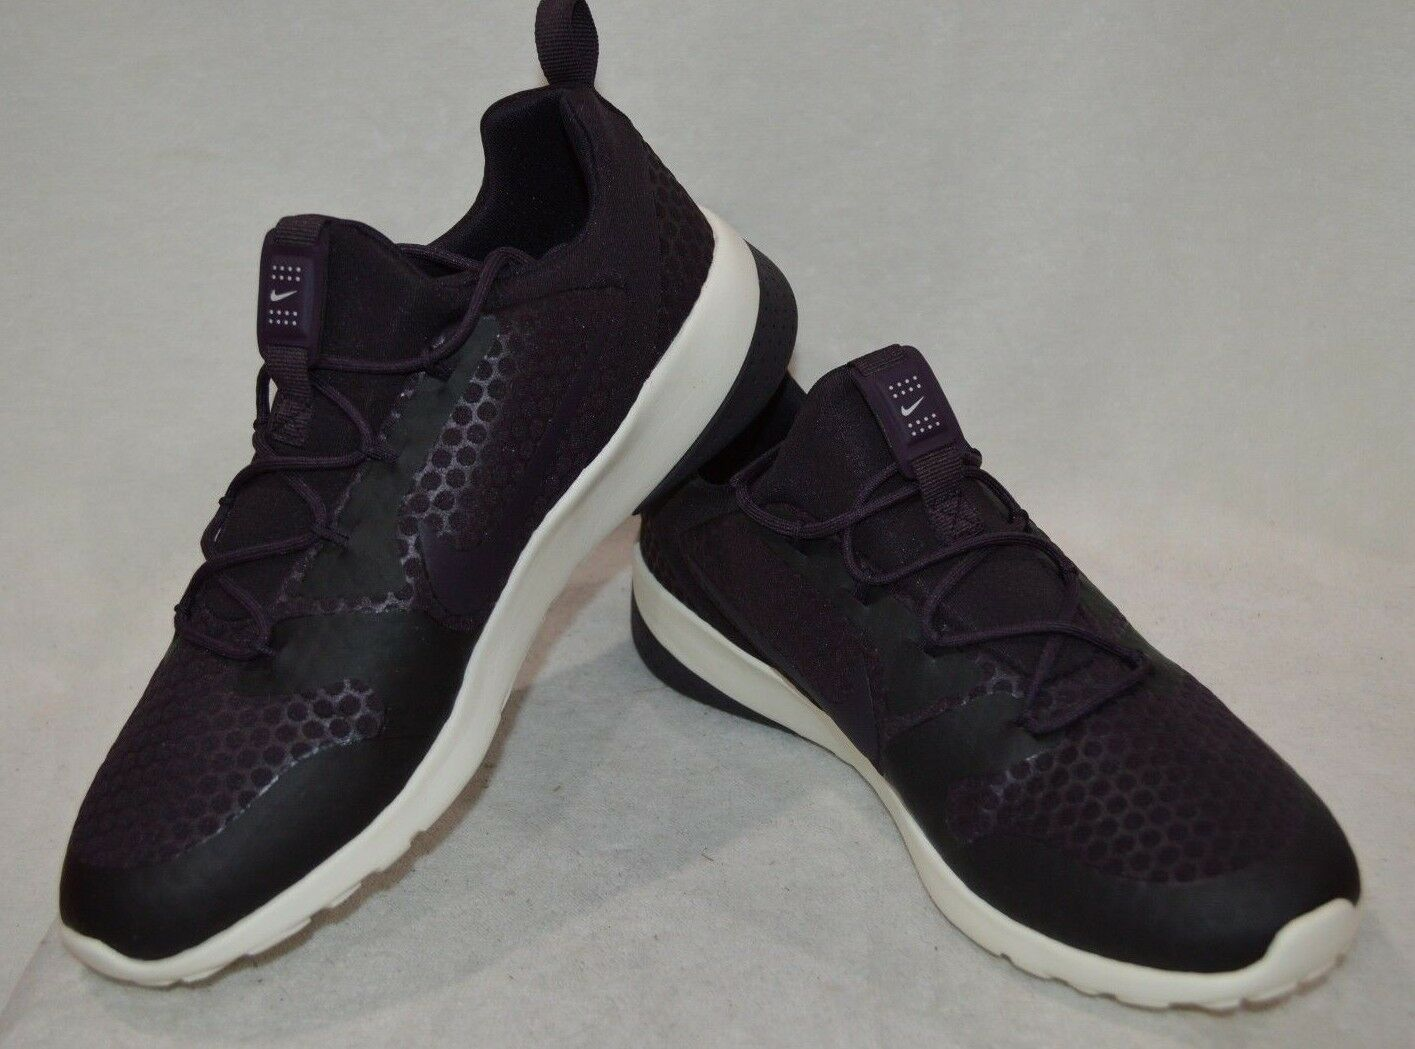 Nike CK Racer Port Wine/Sail Women's Running Shoes-Assorted Sizes NWB 916792-602